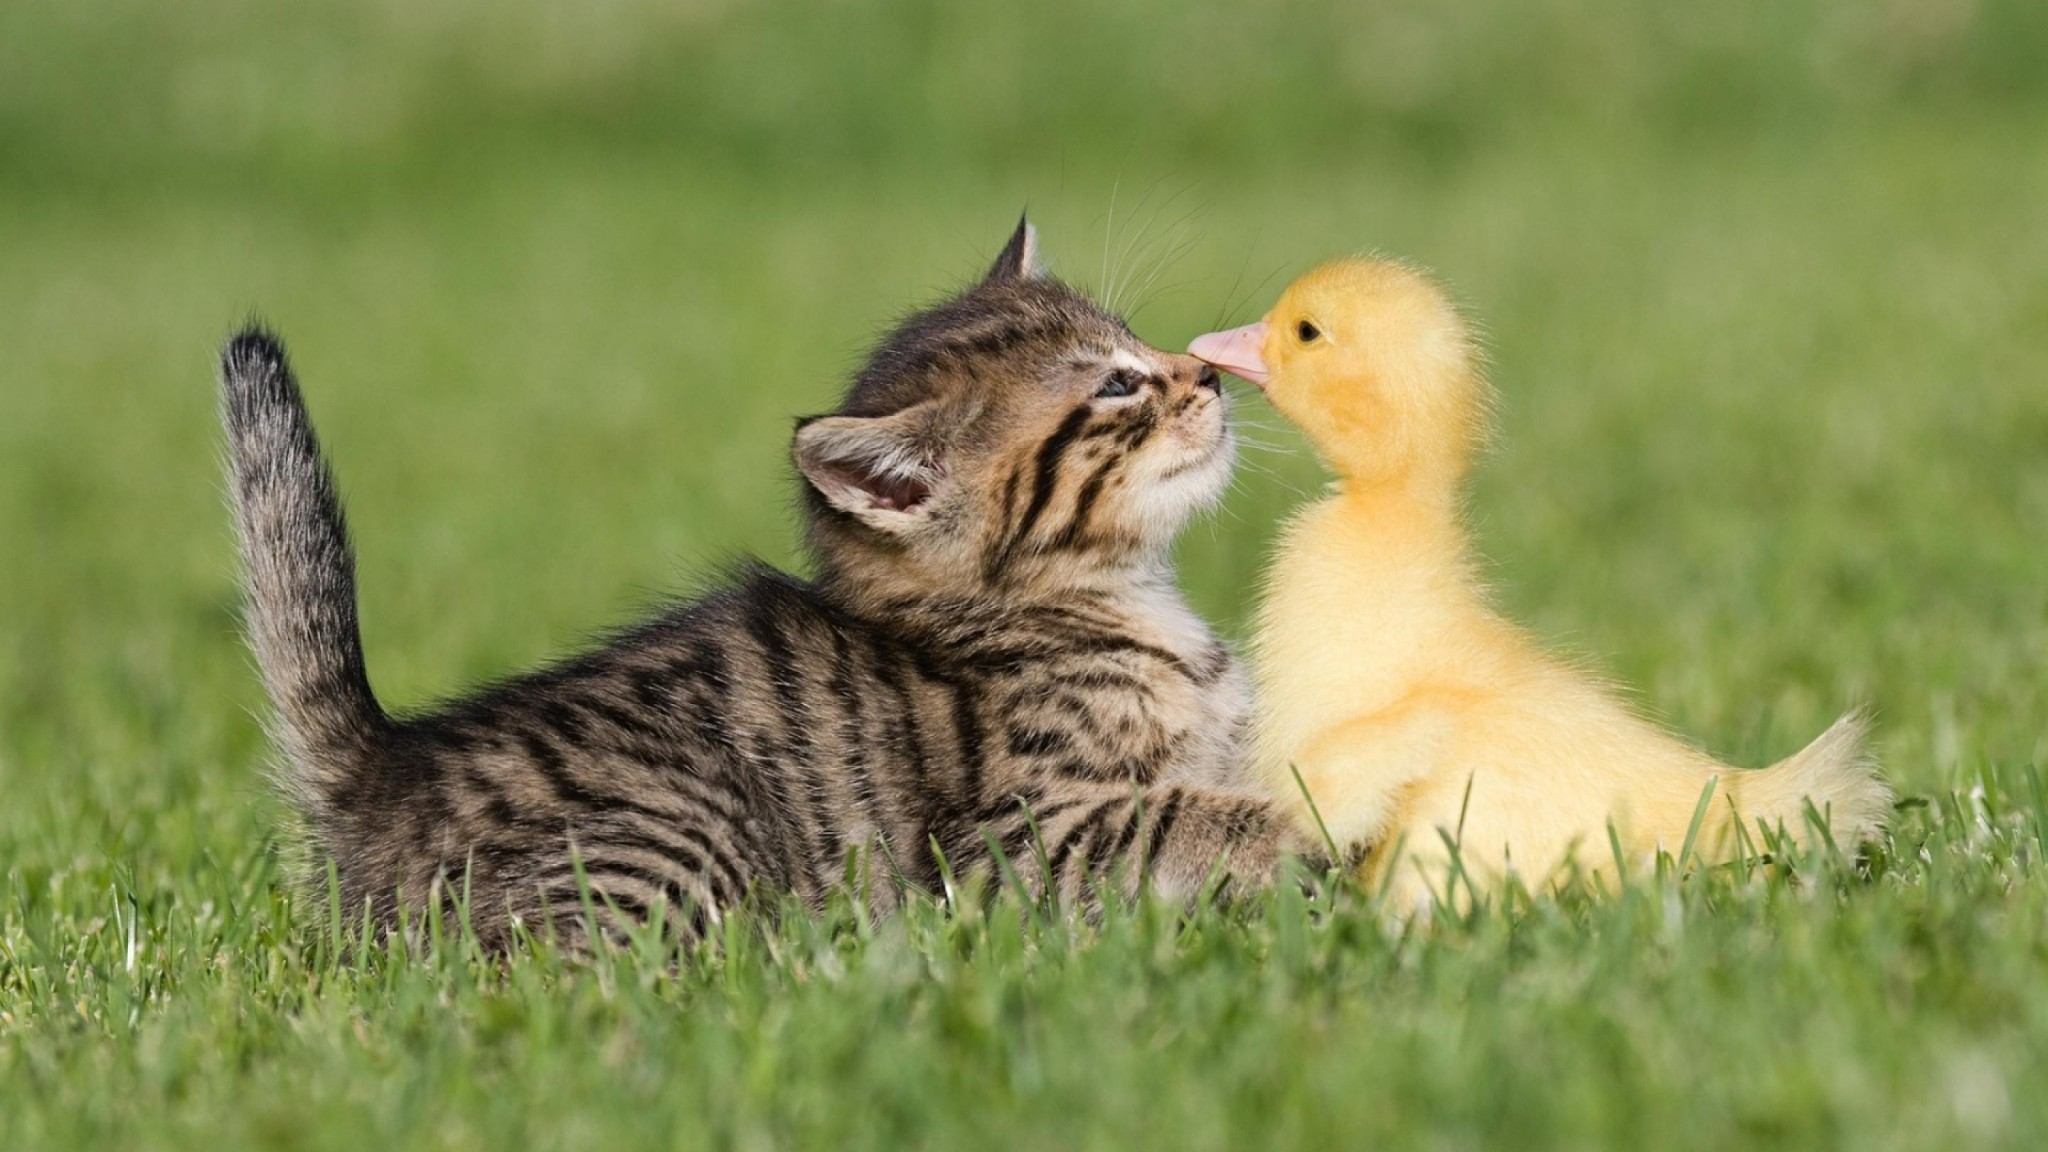 Birds Cats Animals Ducks HD Wallpaper